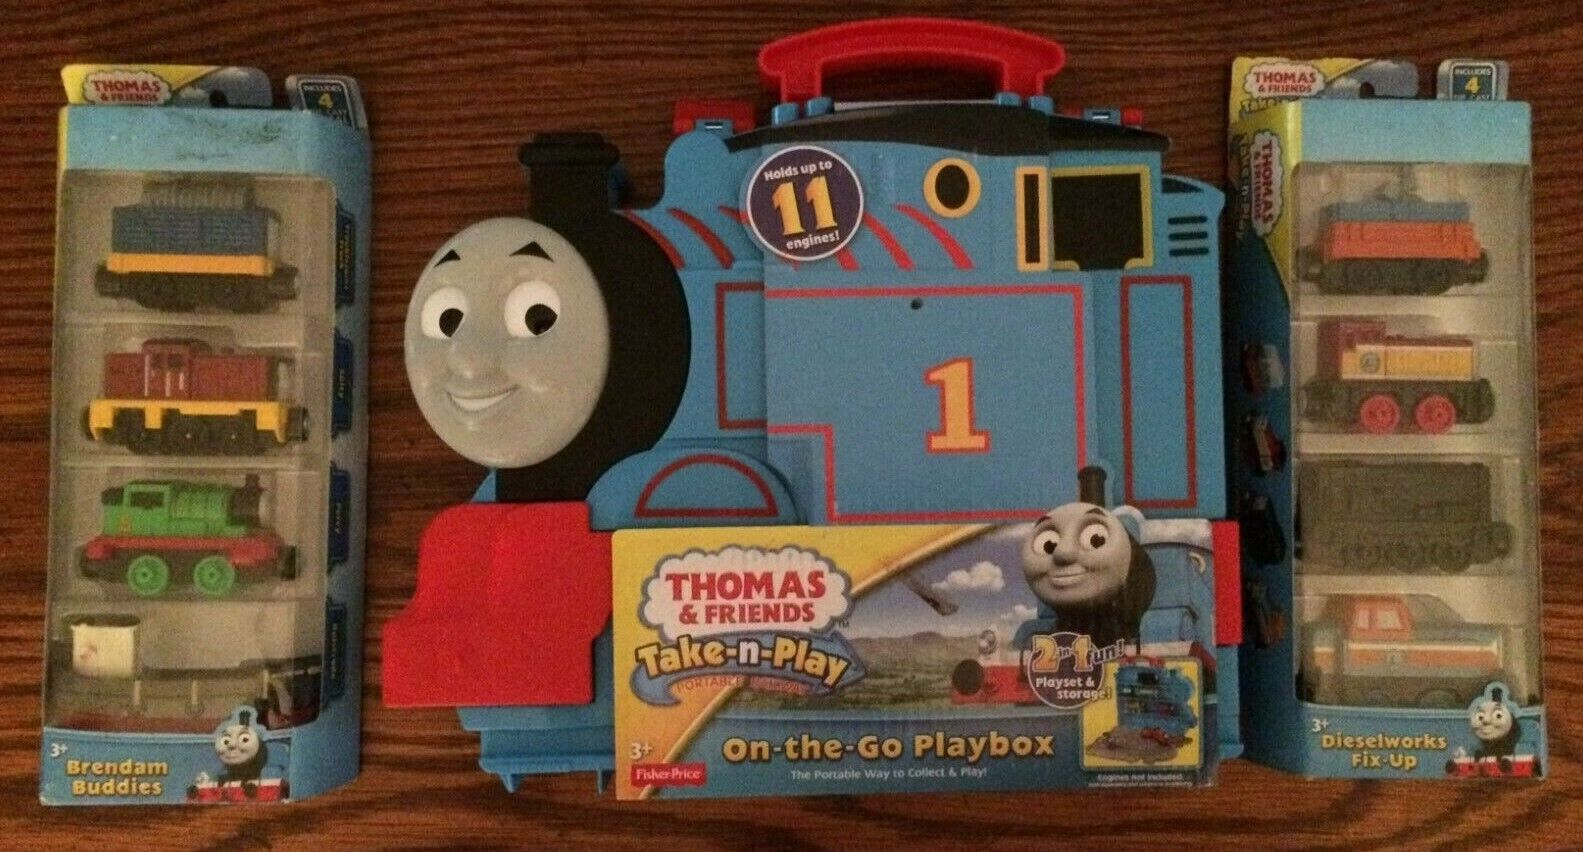 Thomas Take-n-Play On-the-Go-Playbox, Brendam Buddies & Dieselworks Fix-Up NEW